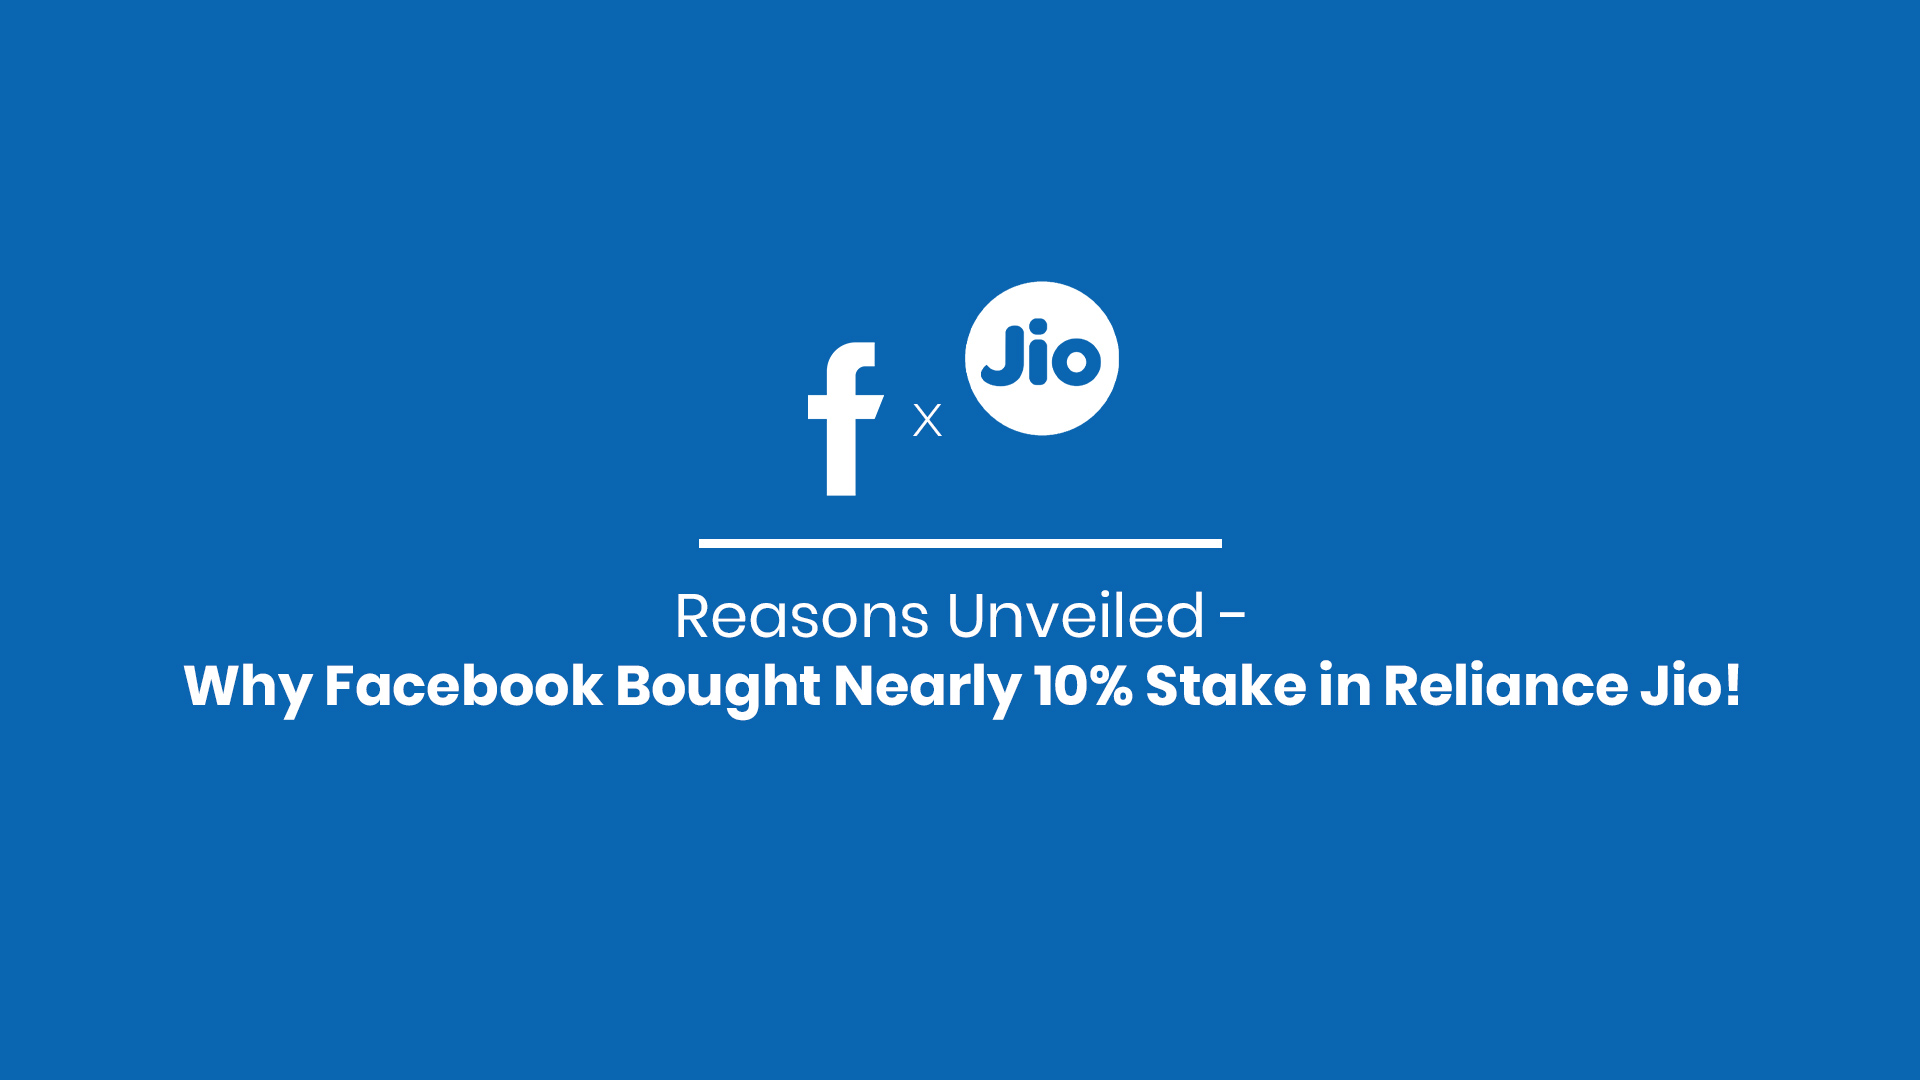 Reasons Unveiled - Why Facebook Bought Nearly 10% Stake in Reliance Jio!